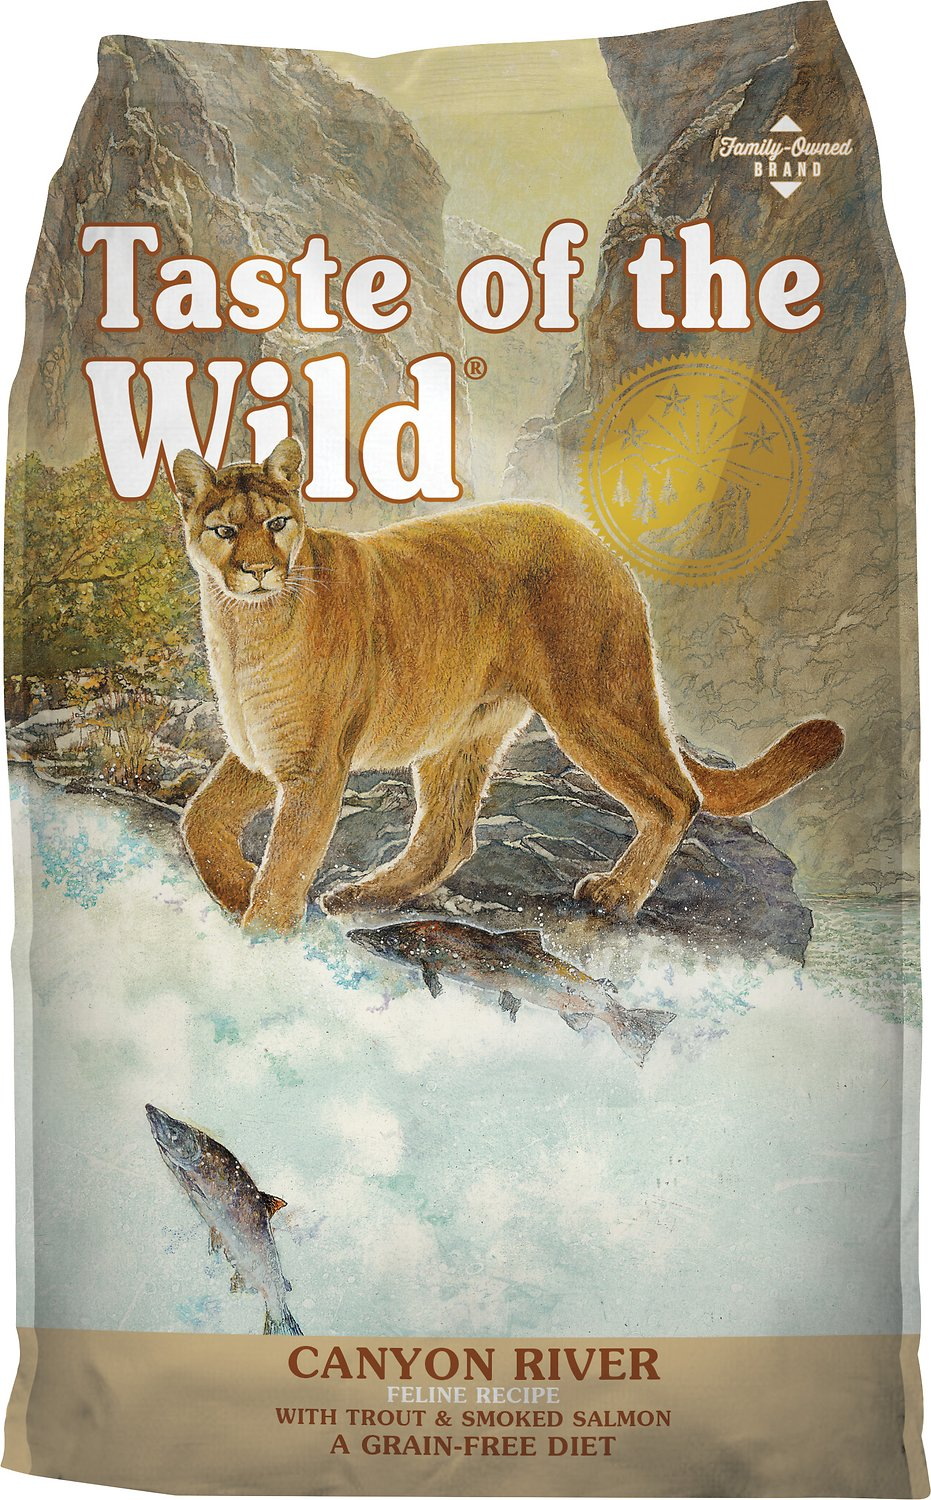 Taste of the Wild Canyon River Grain-Free Dry Cat Food Image